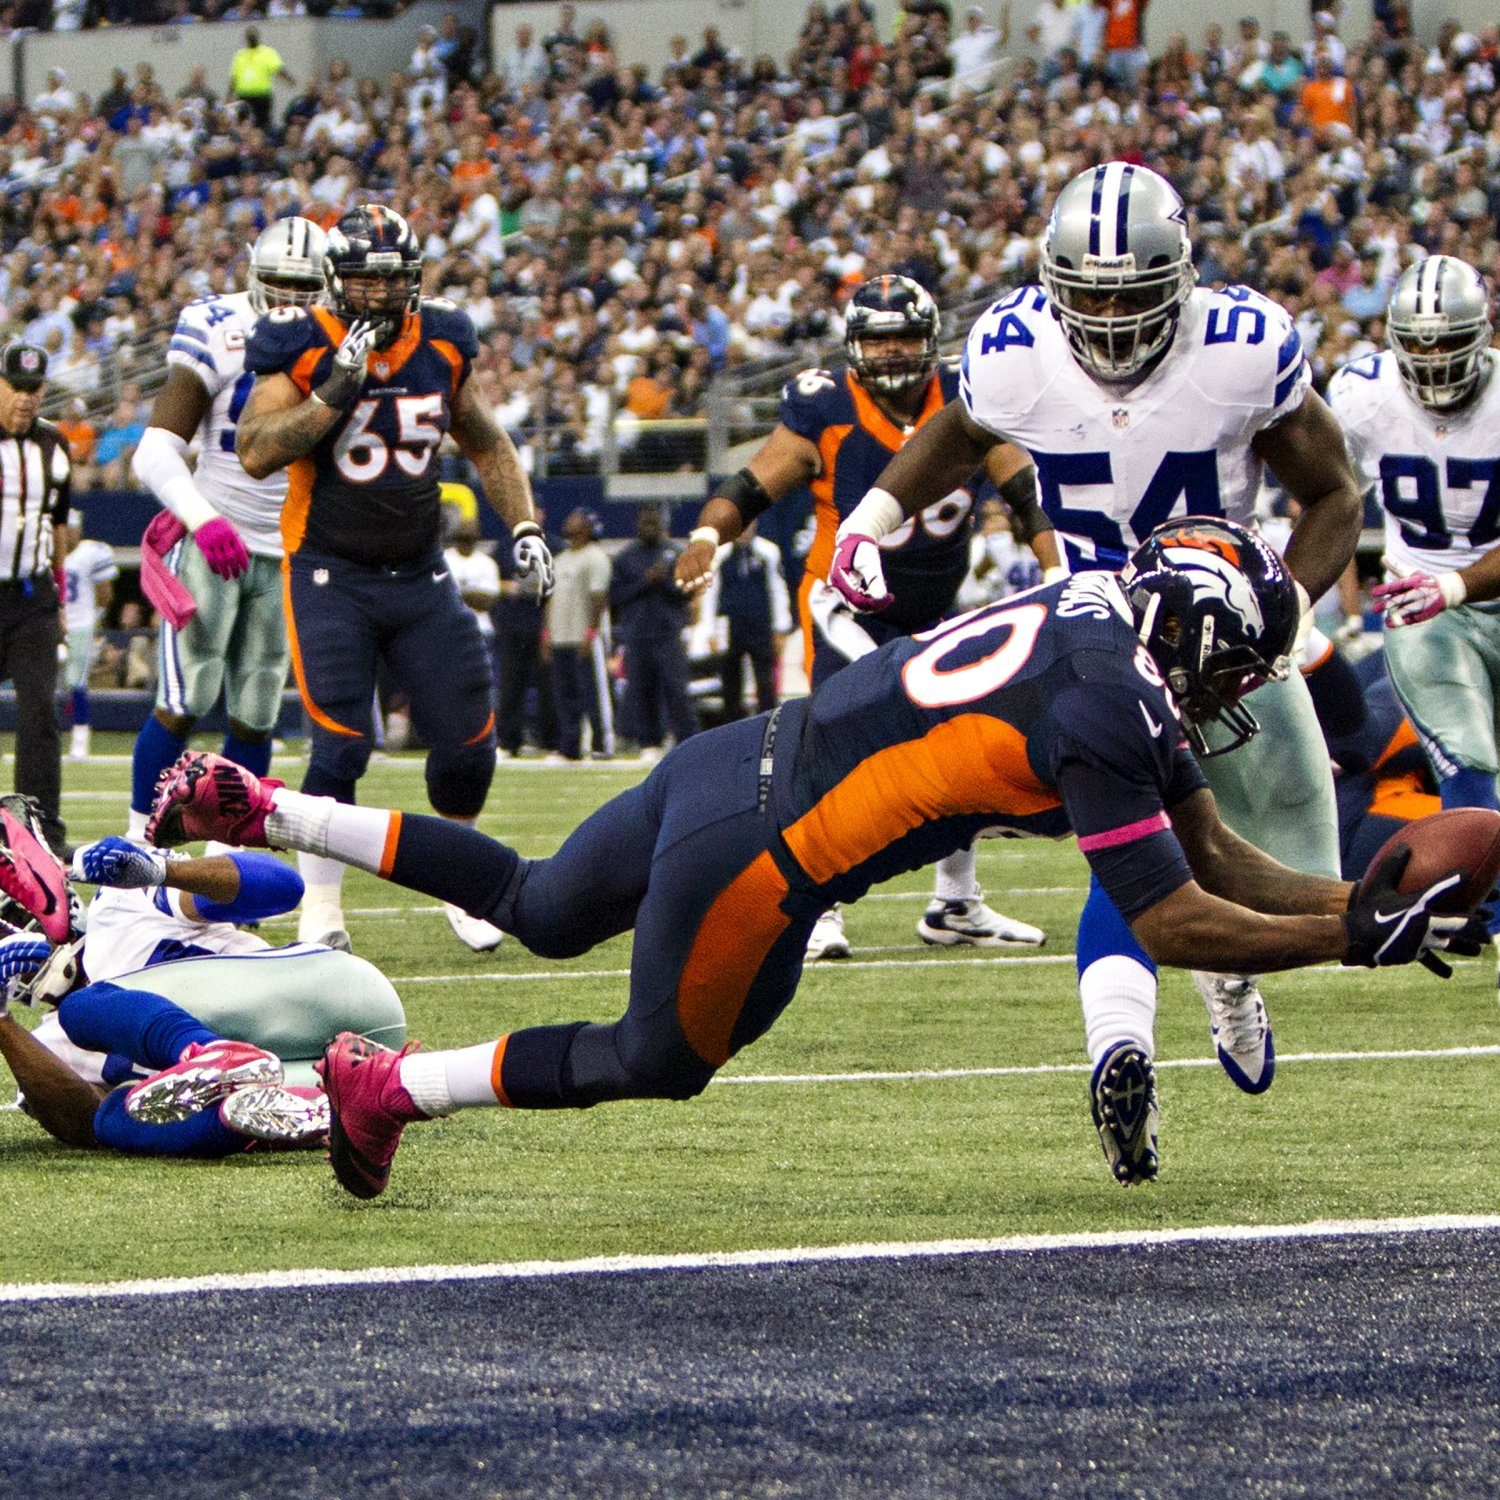 cowboys vs broncos - photo #26